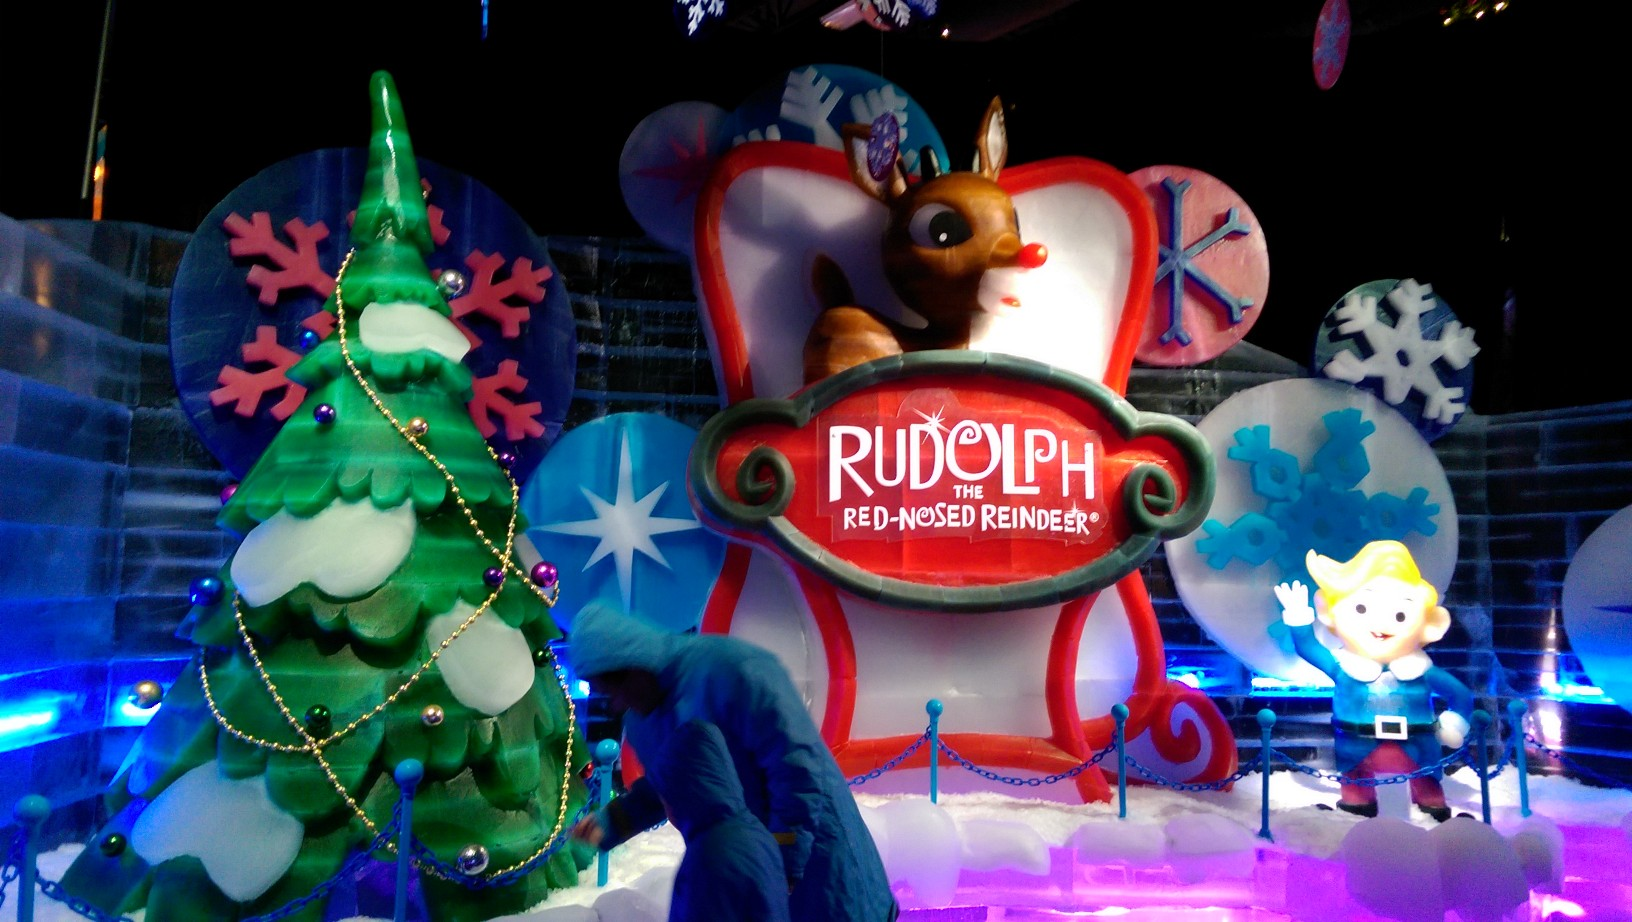 Rudolph the Red-Nosed Reindeer at ICE!